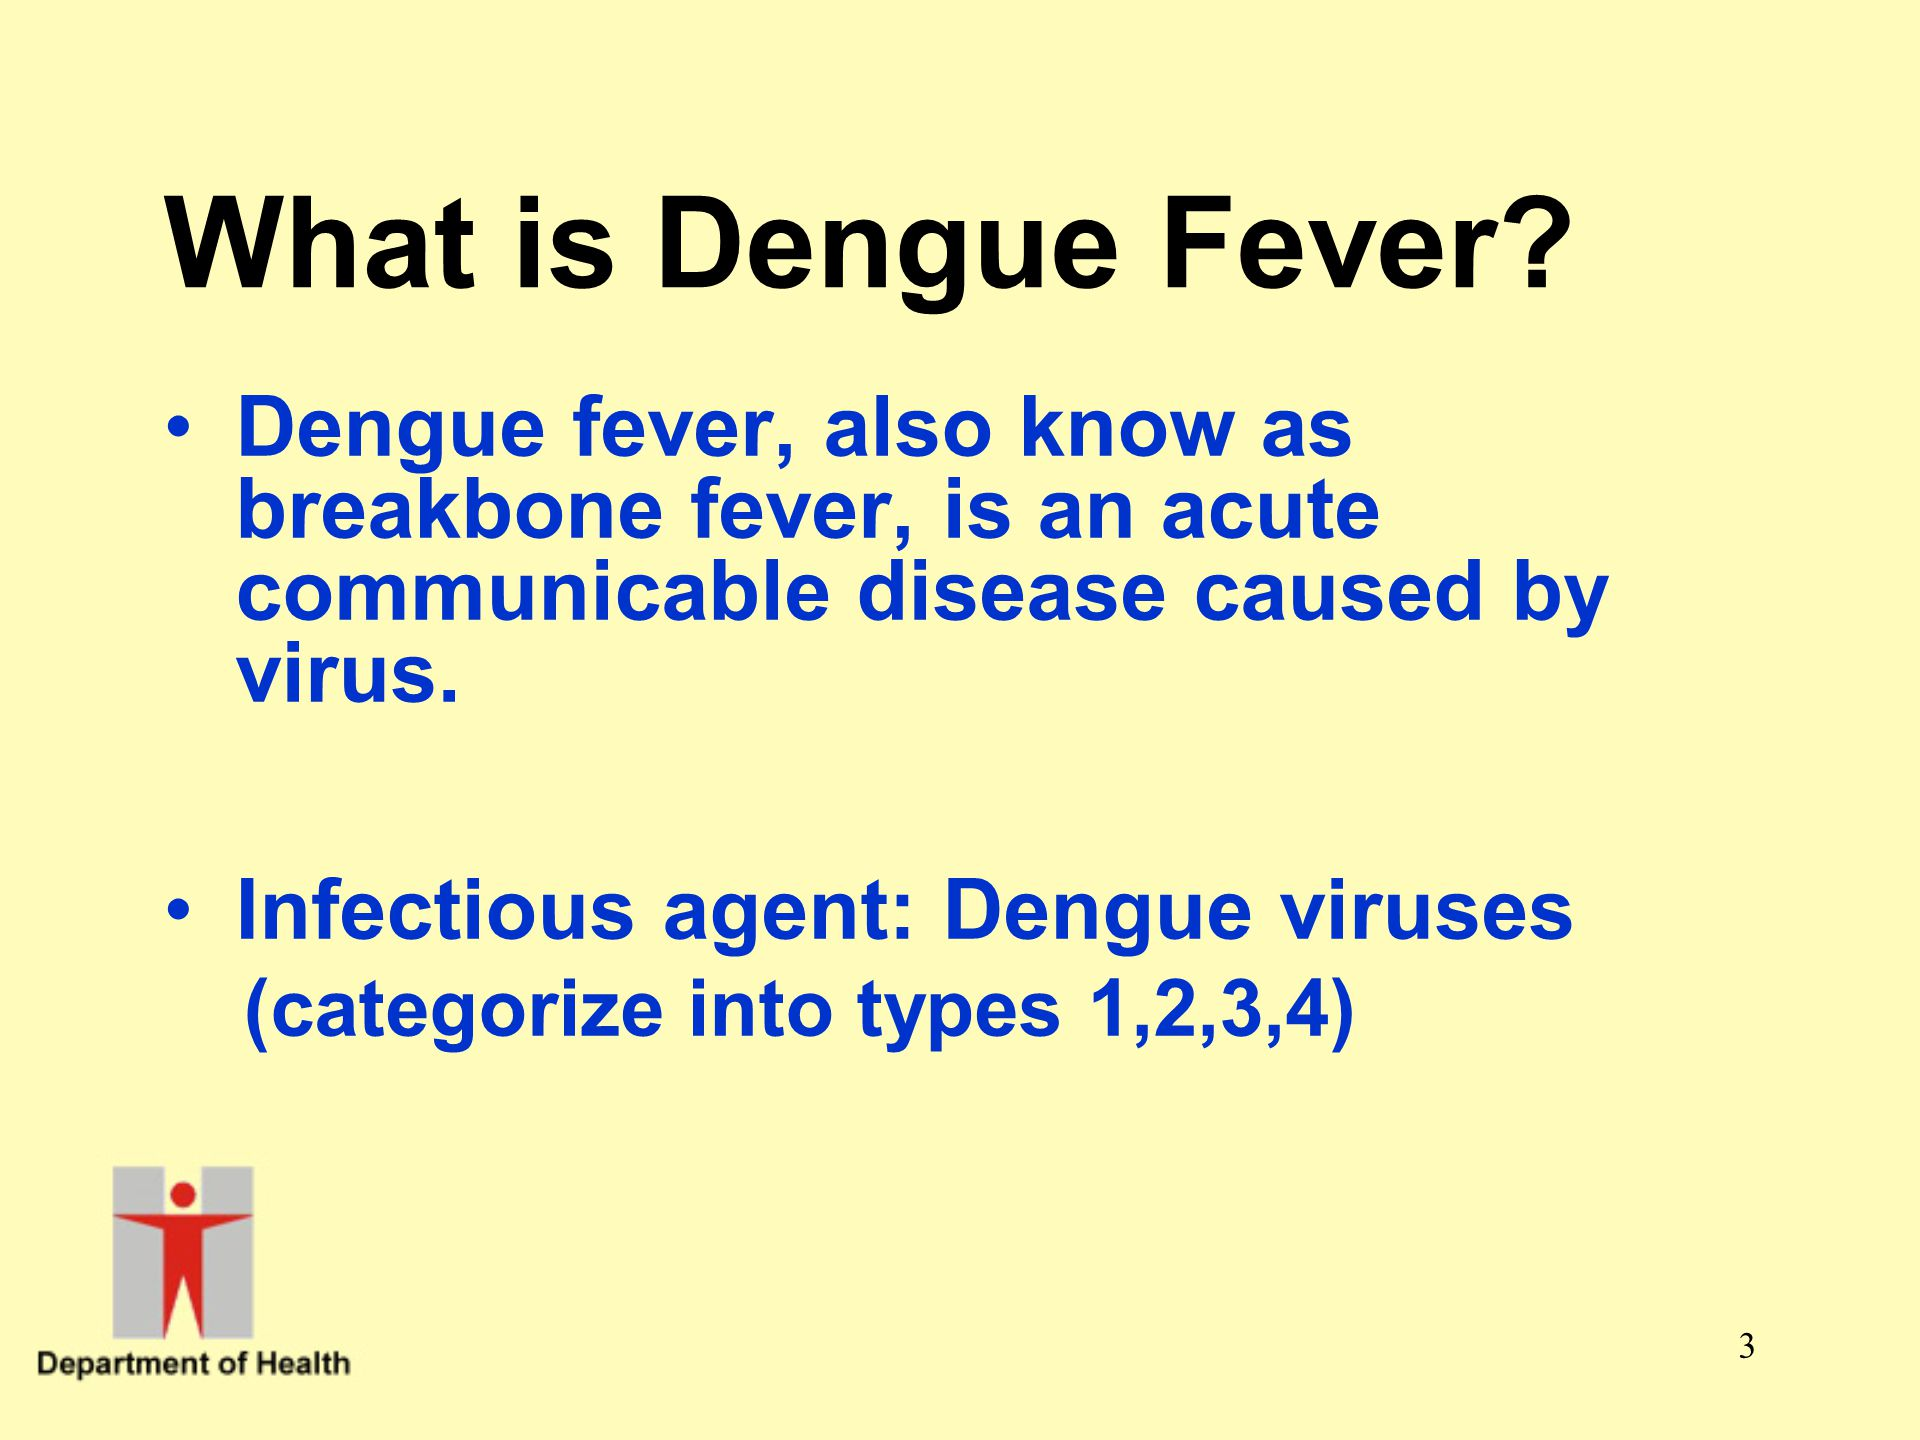 What is Dengue Fever Dengue fever, also know as breakbone fever, is an acute communicable disease caused by virus.